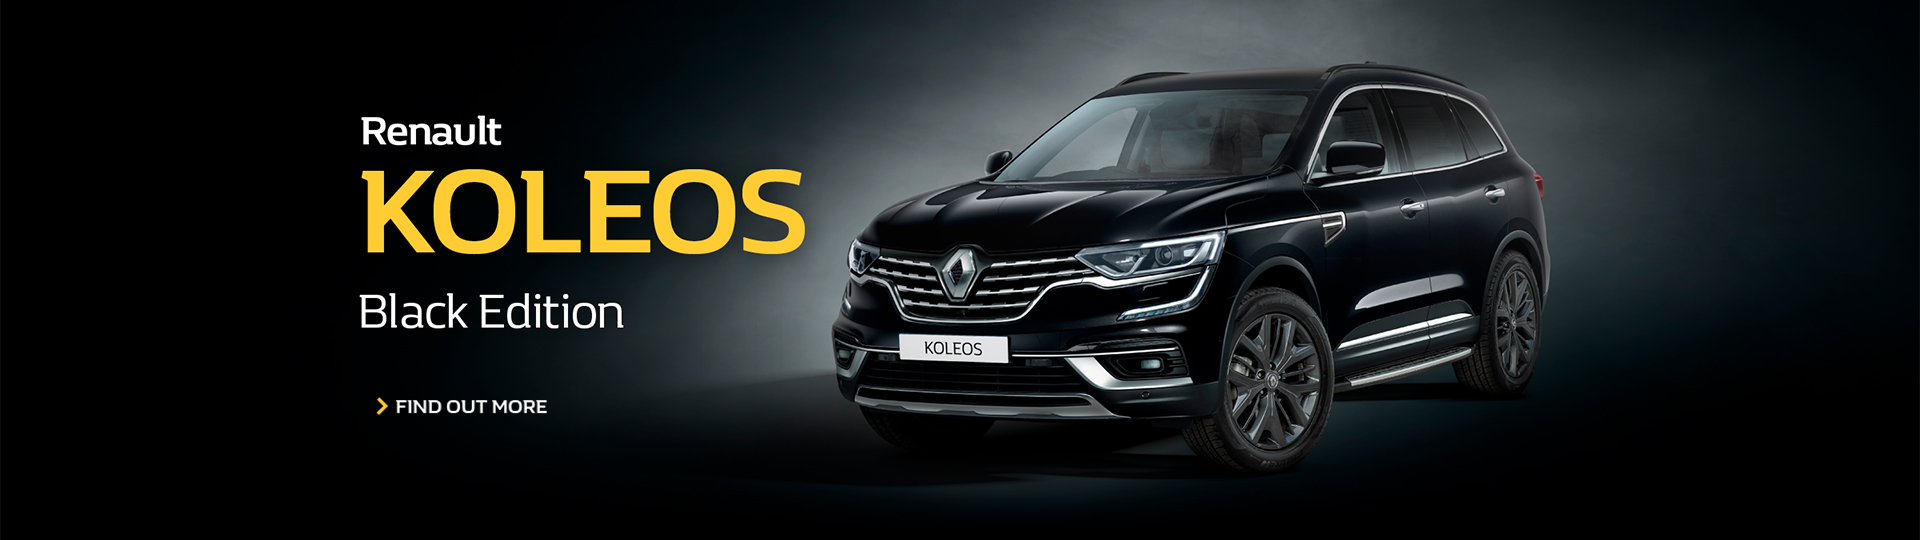 Renault KOLEOS Black Edition. Find out more